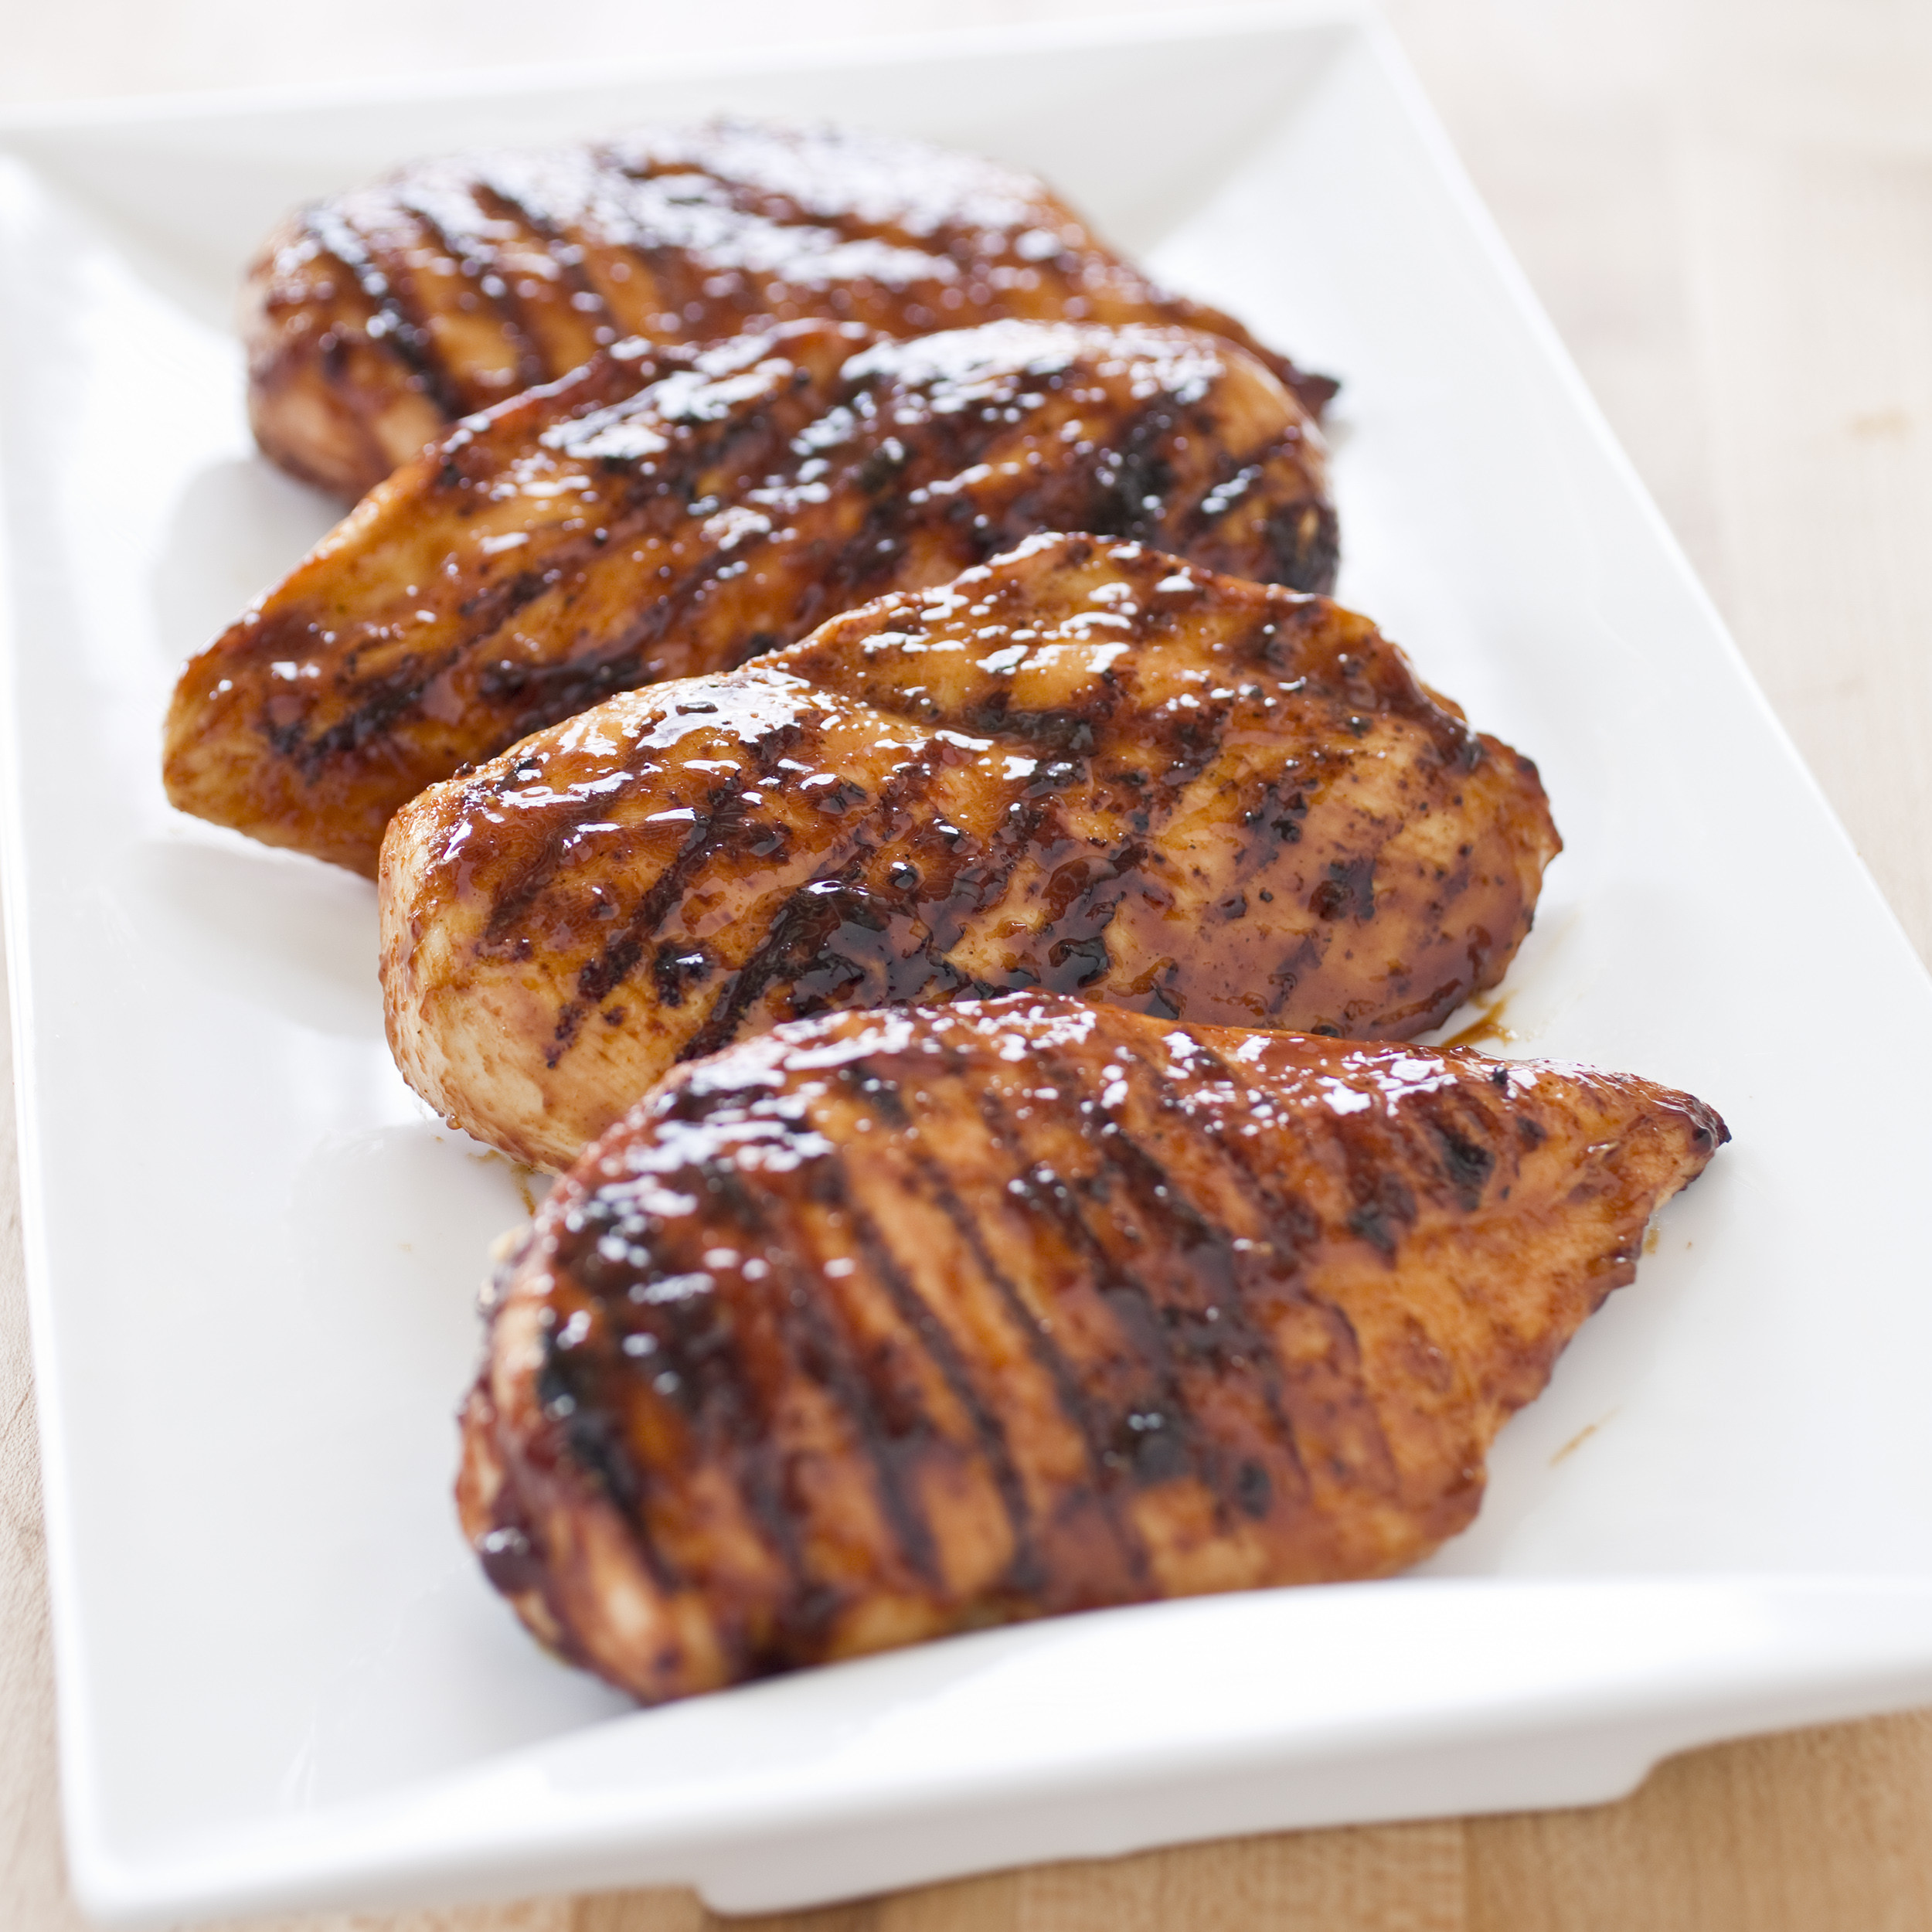 Boneless Chicken Breasts  Grilled Glazed Boneless Skinless Chicken Breasts